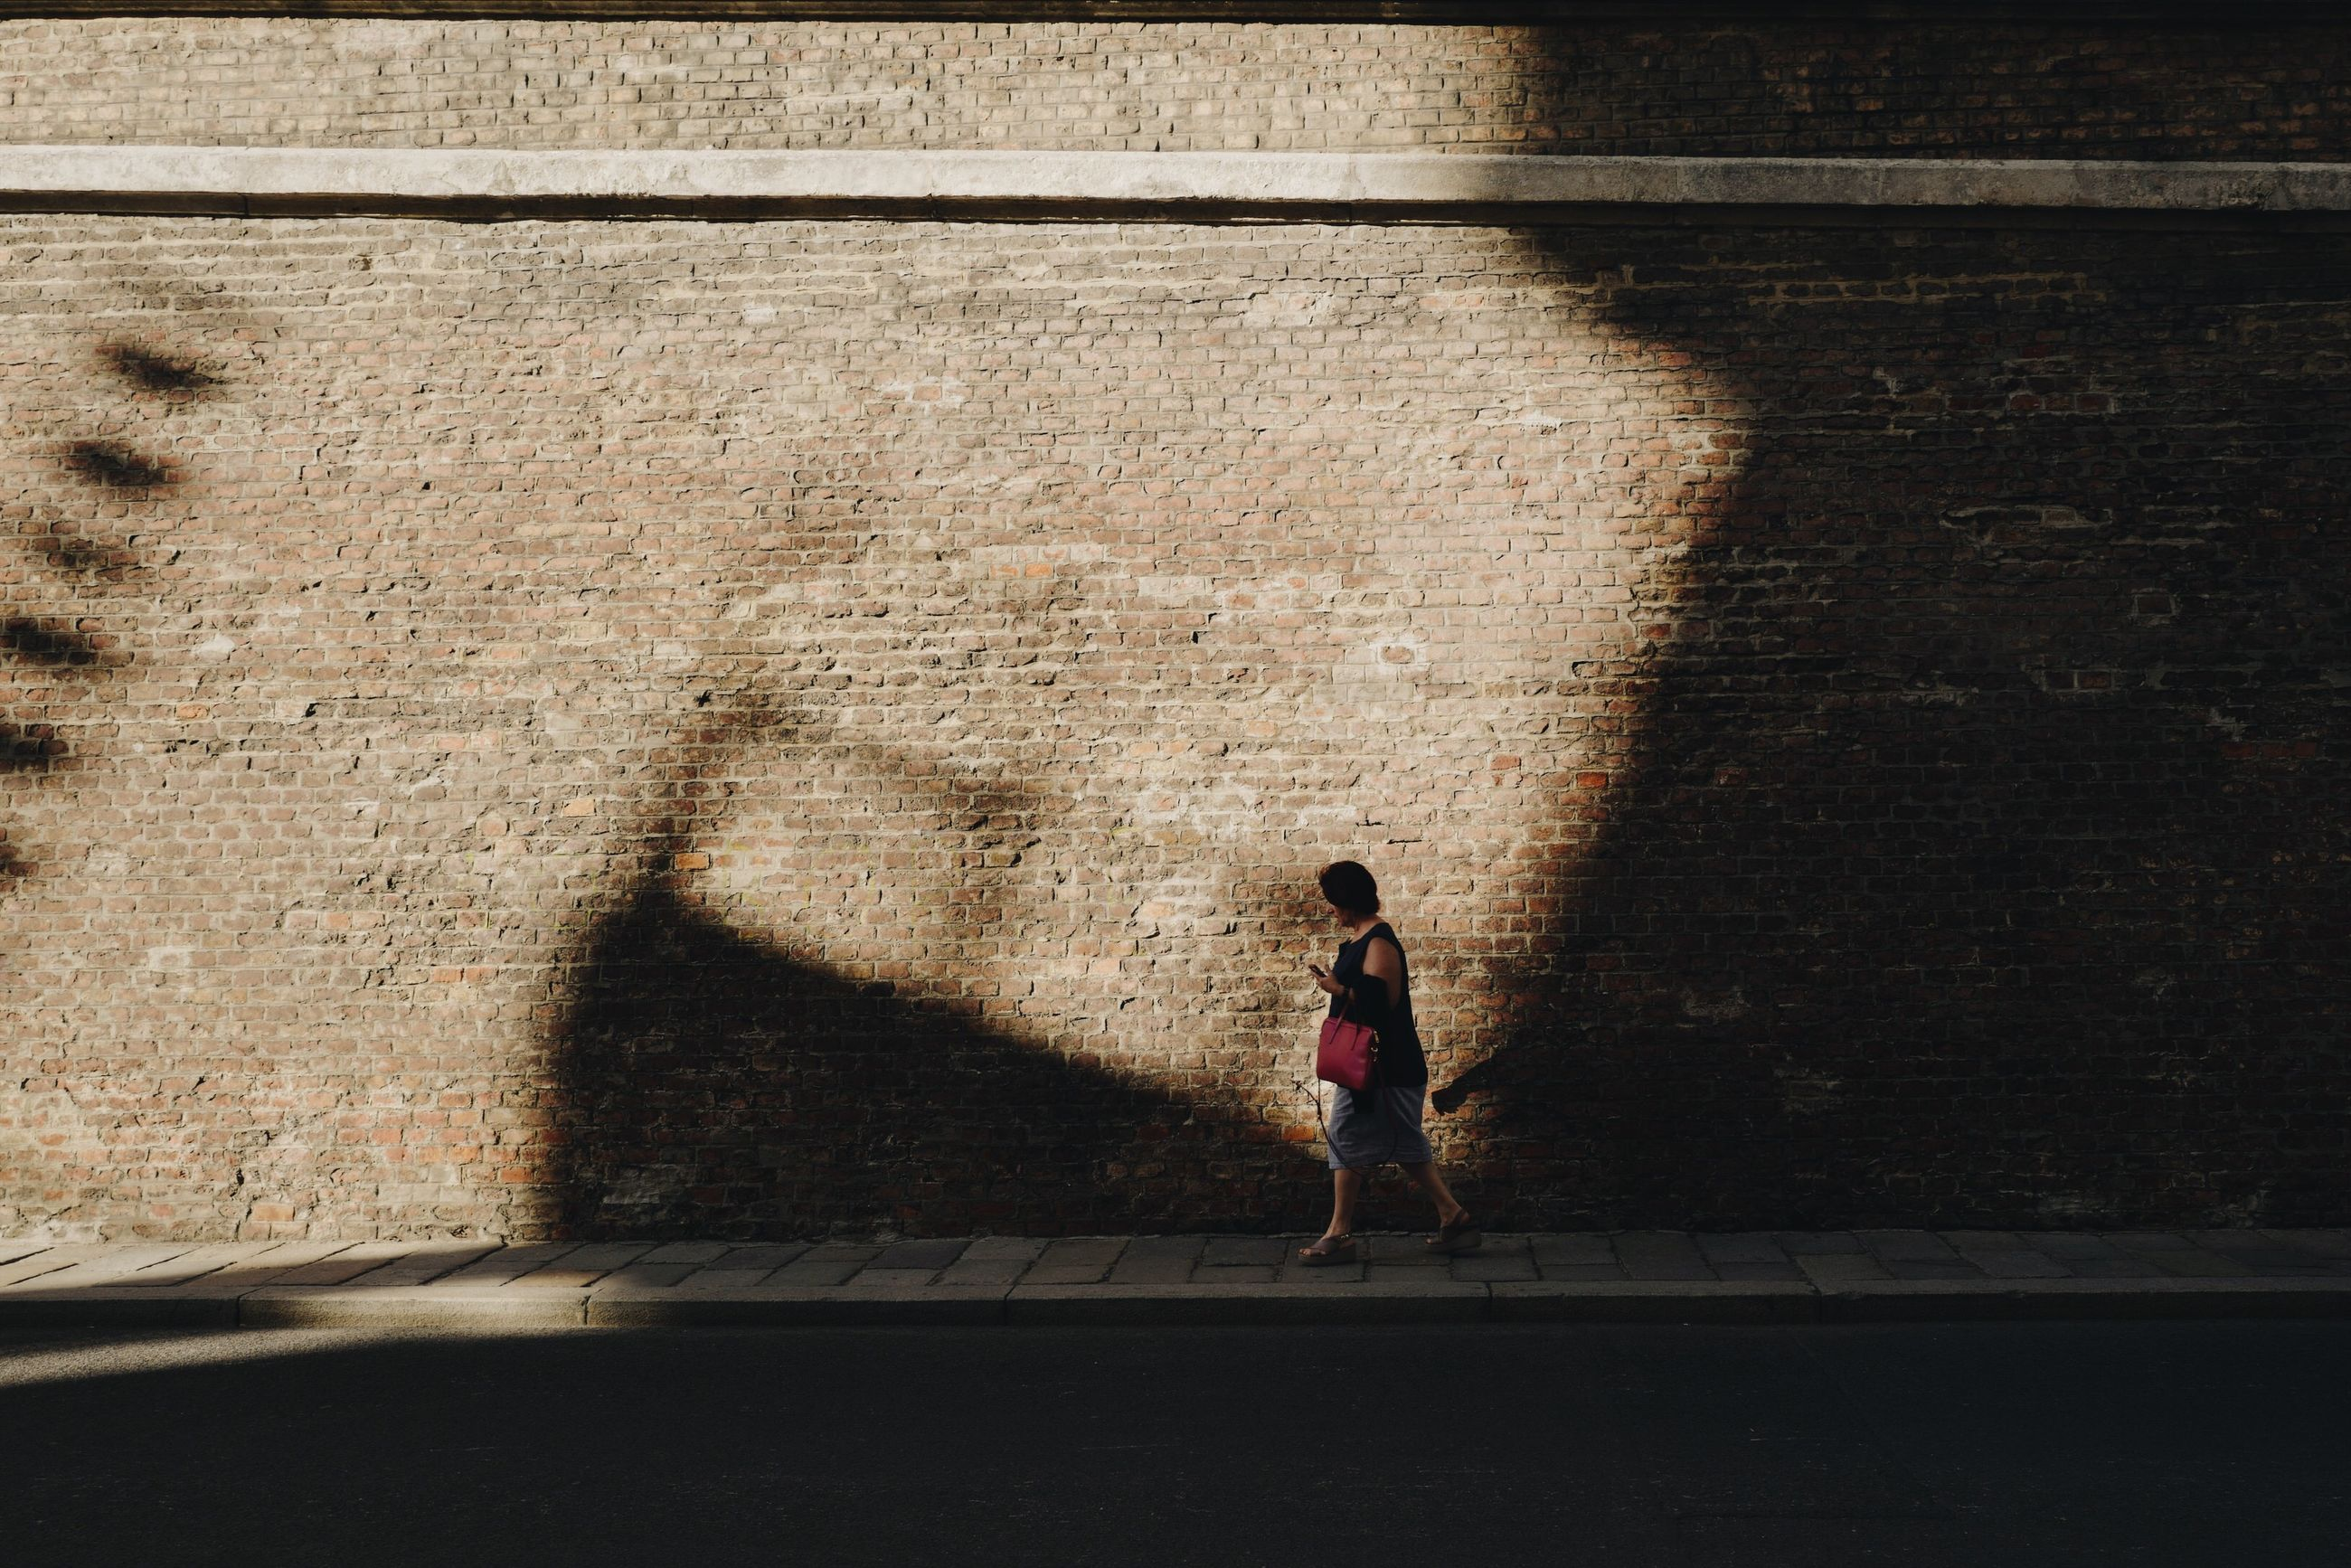 full length, shadow, one person, sunlight, real people, walking, architecture, wall - building feature, women, footpath, day, lifestyles, built structure, child, nature, wall, adult, sidewalk, city, outdoors